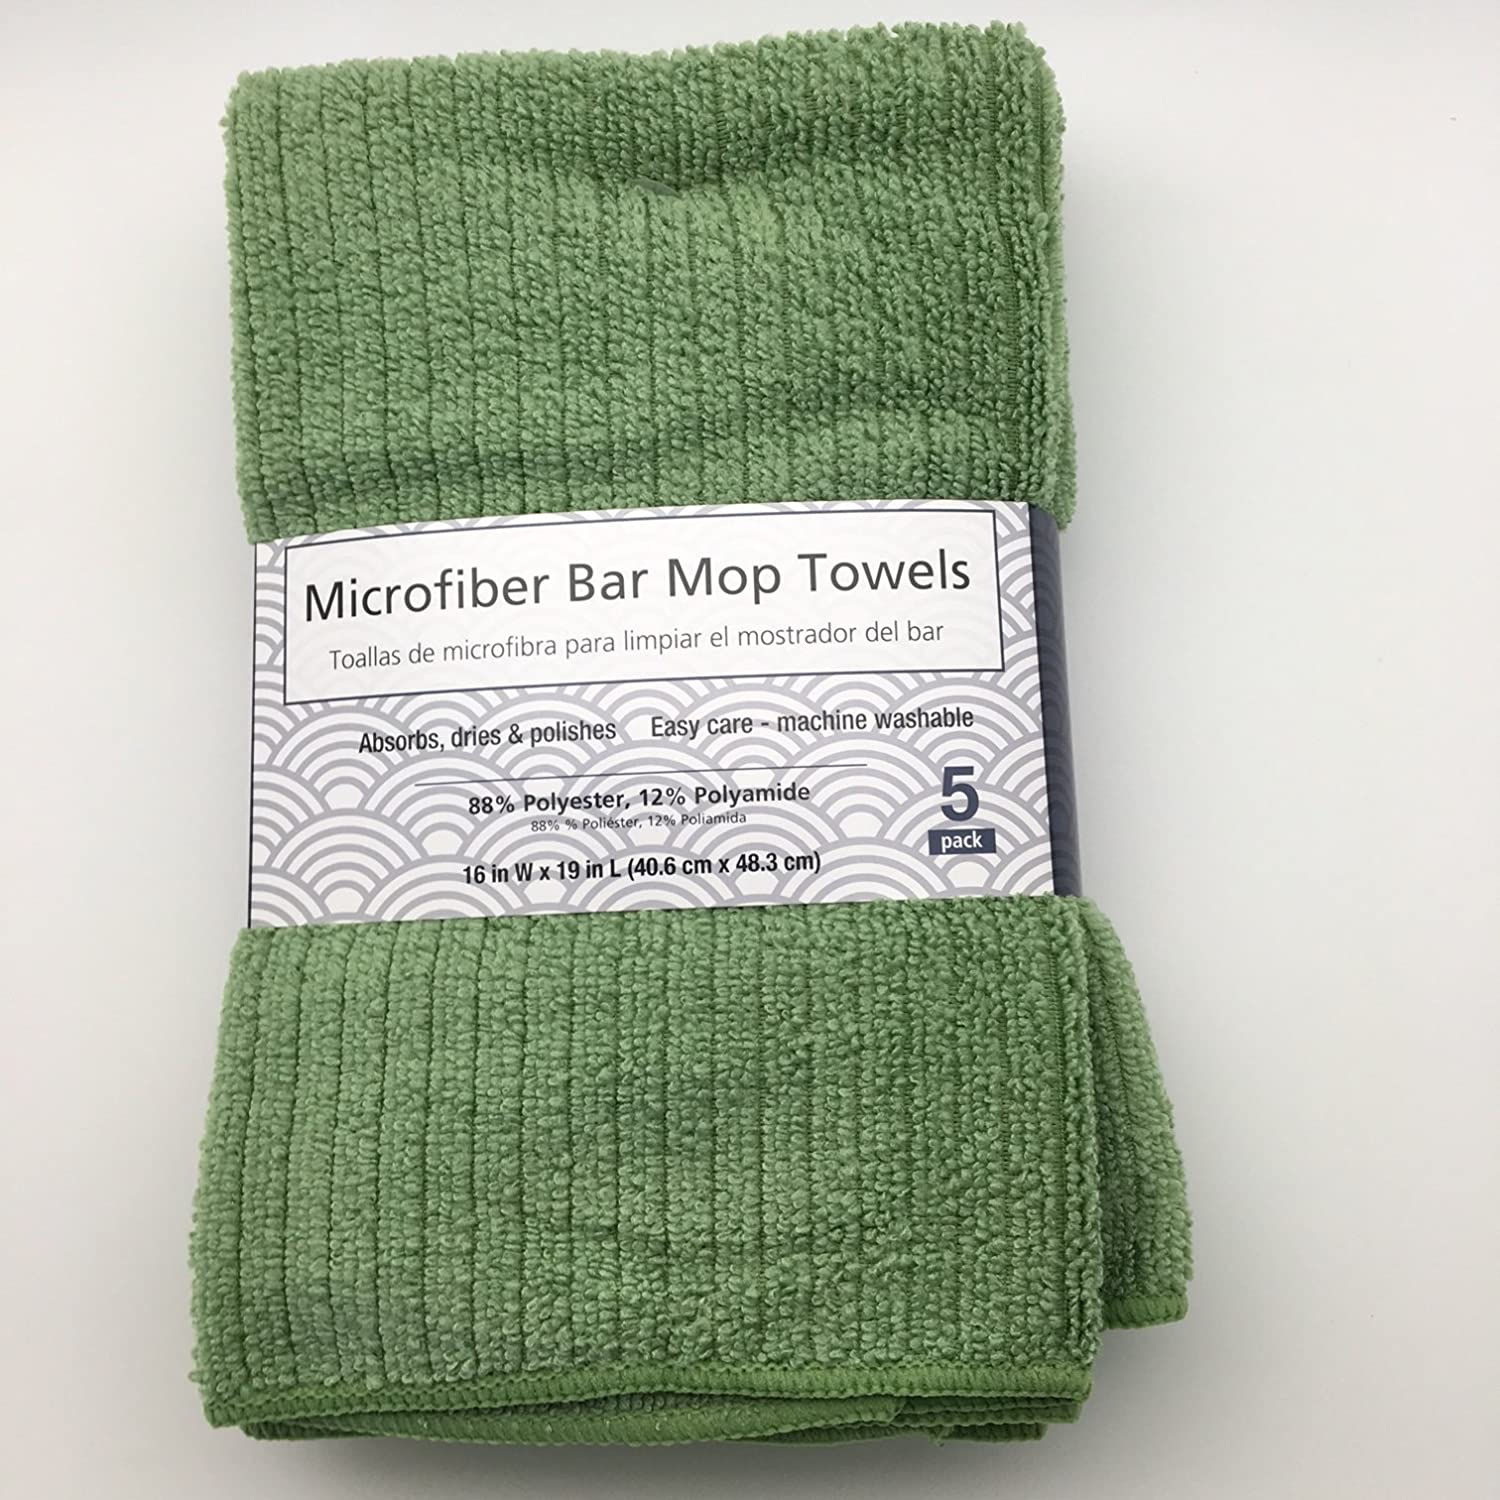 Microfiber Bar Mop Towels 16 X 19 Inches 5 Pack in Apple and Dark Green Made for Intellibrands 5-MFBM1200